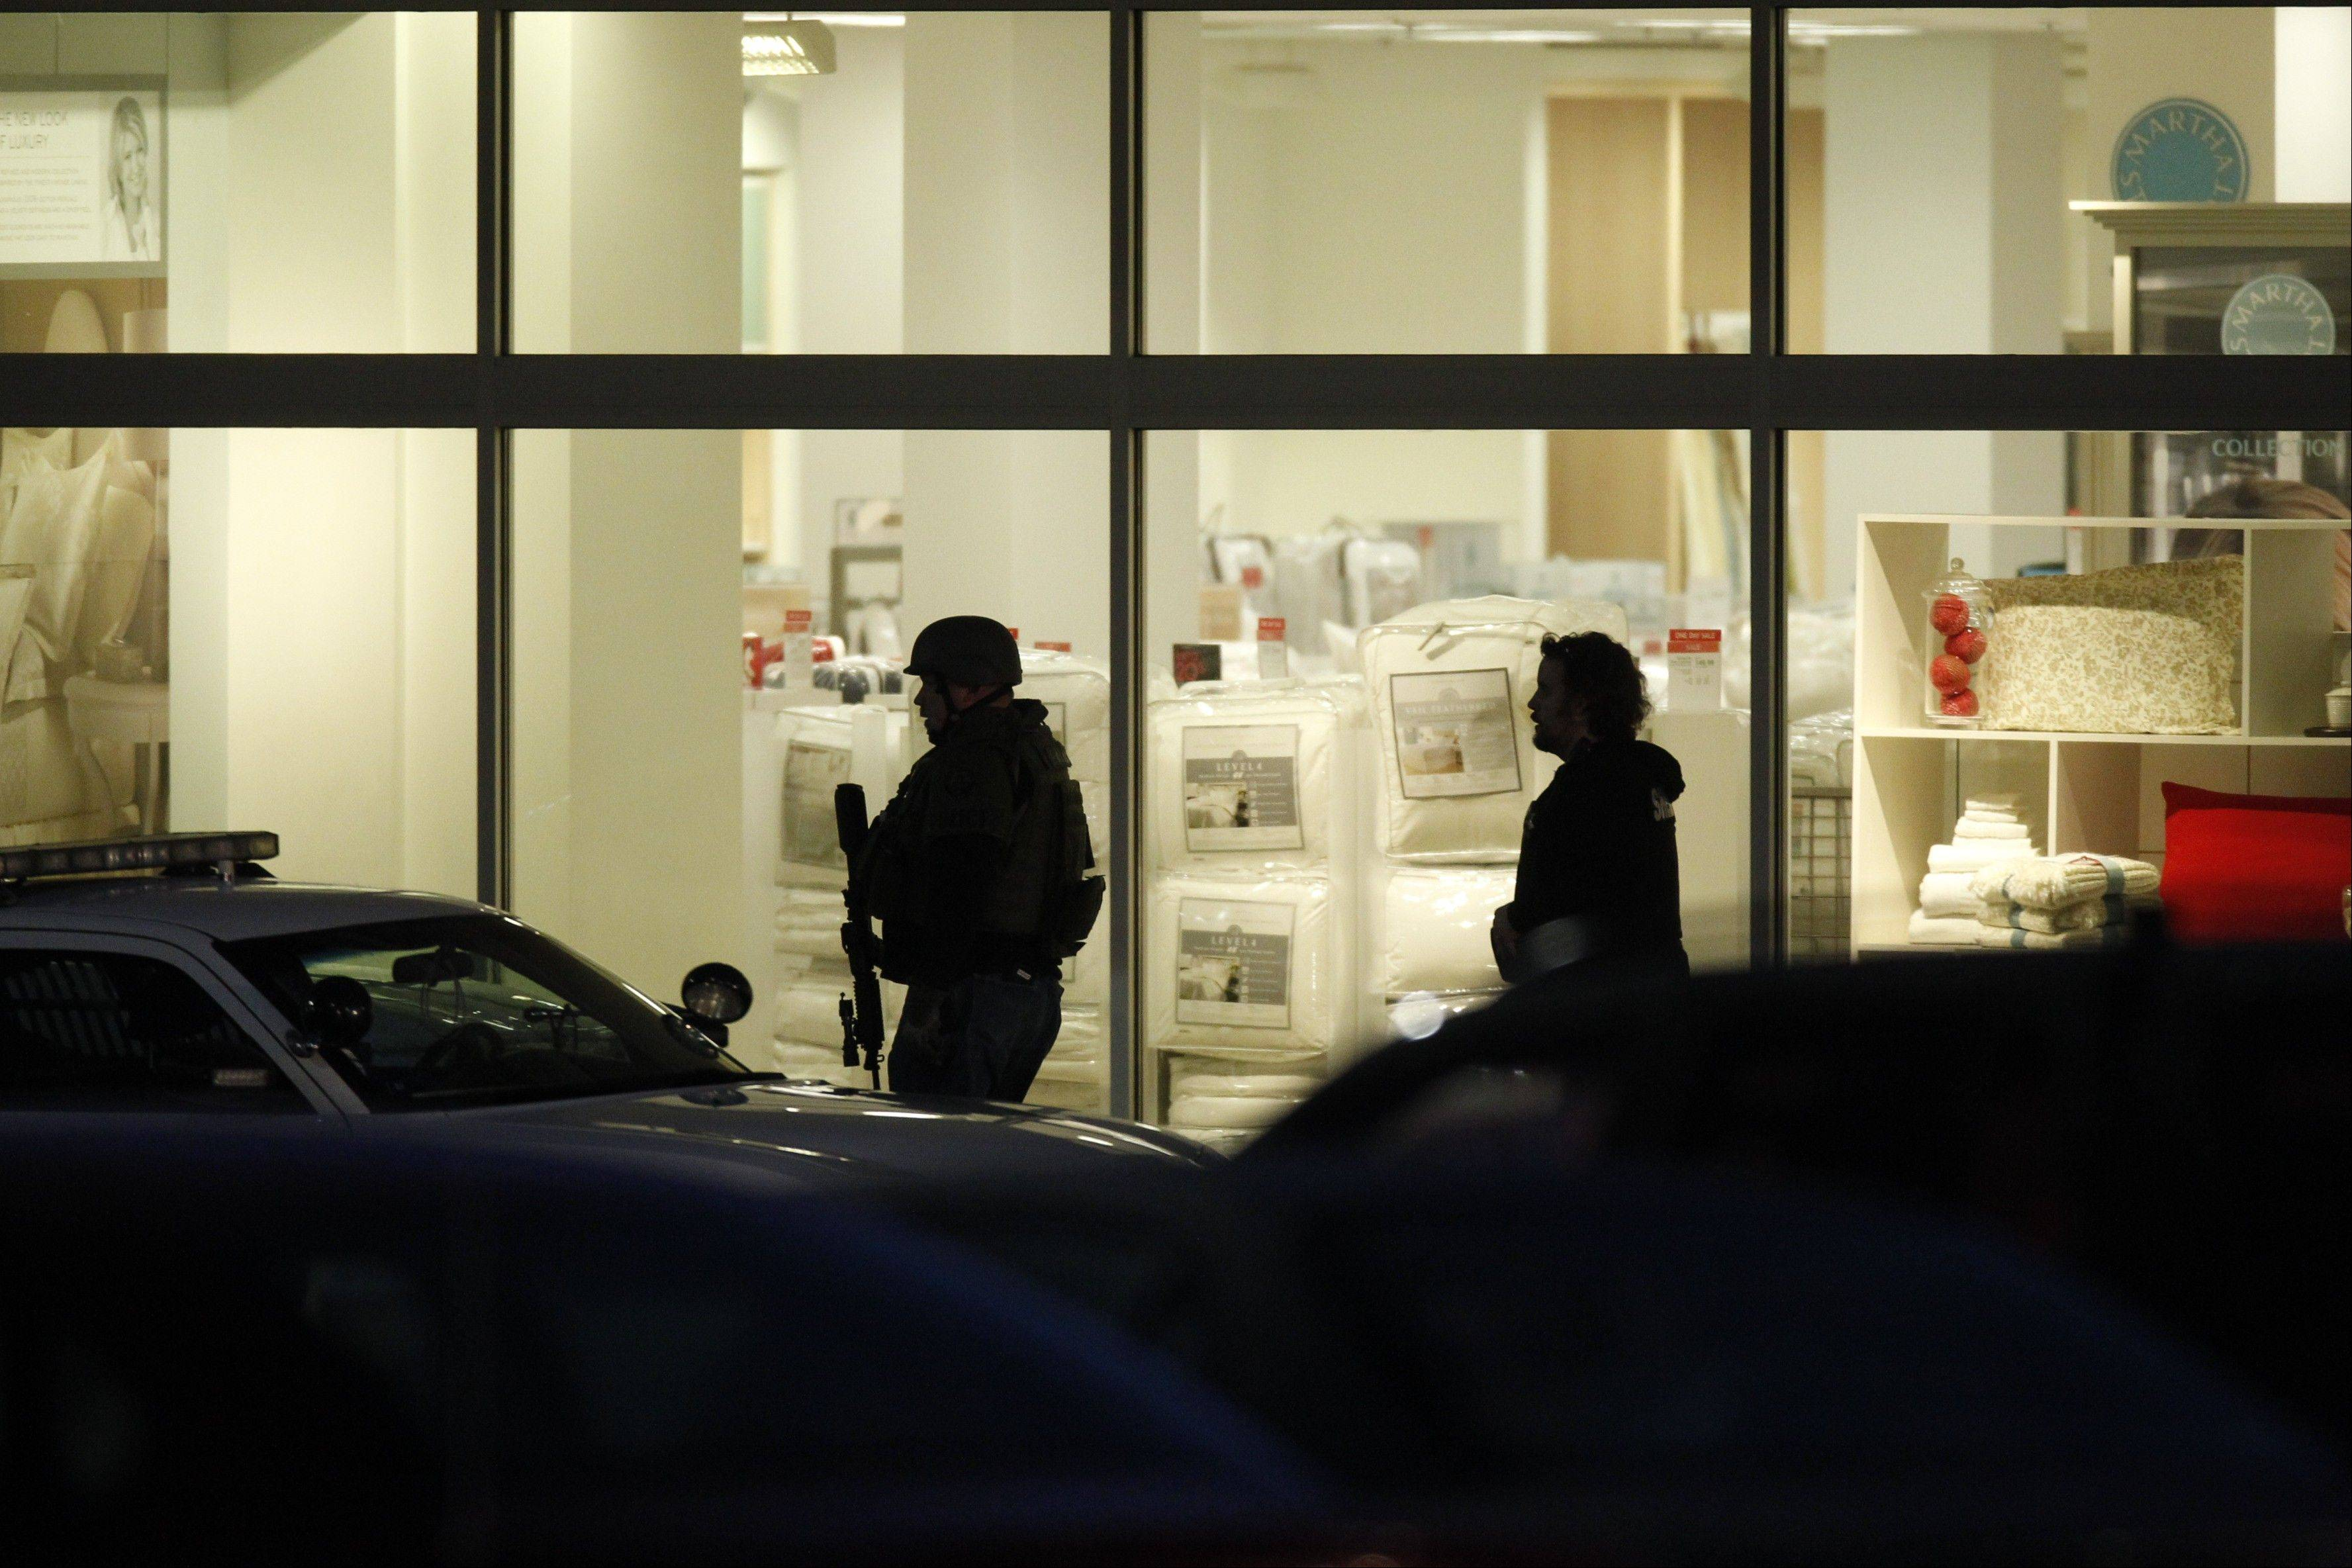 Law enforcement personnel work Tuesday at the scene of a shooting at the Clackamas Town Center mall in Clackamas, Ore. A gunman killed two people and wounded a third amid a holiday crowd estimated at 10,000 people.